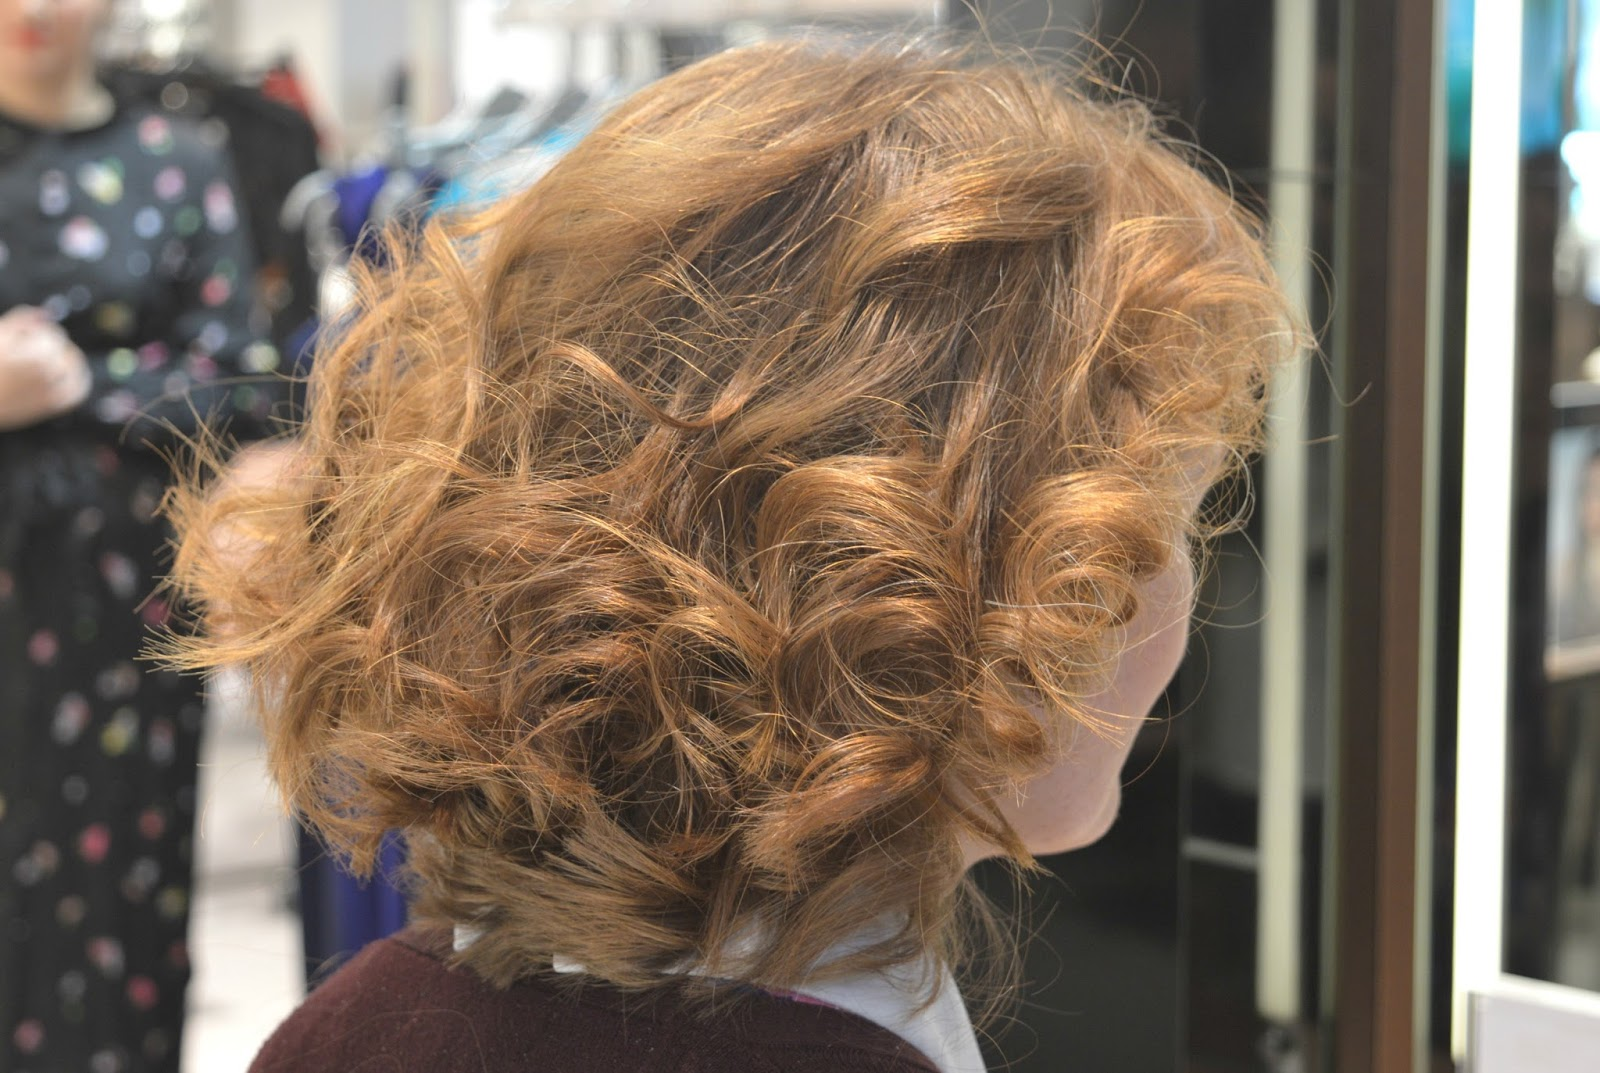 Show Dry Bar at House of Fraser, Metrocentre